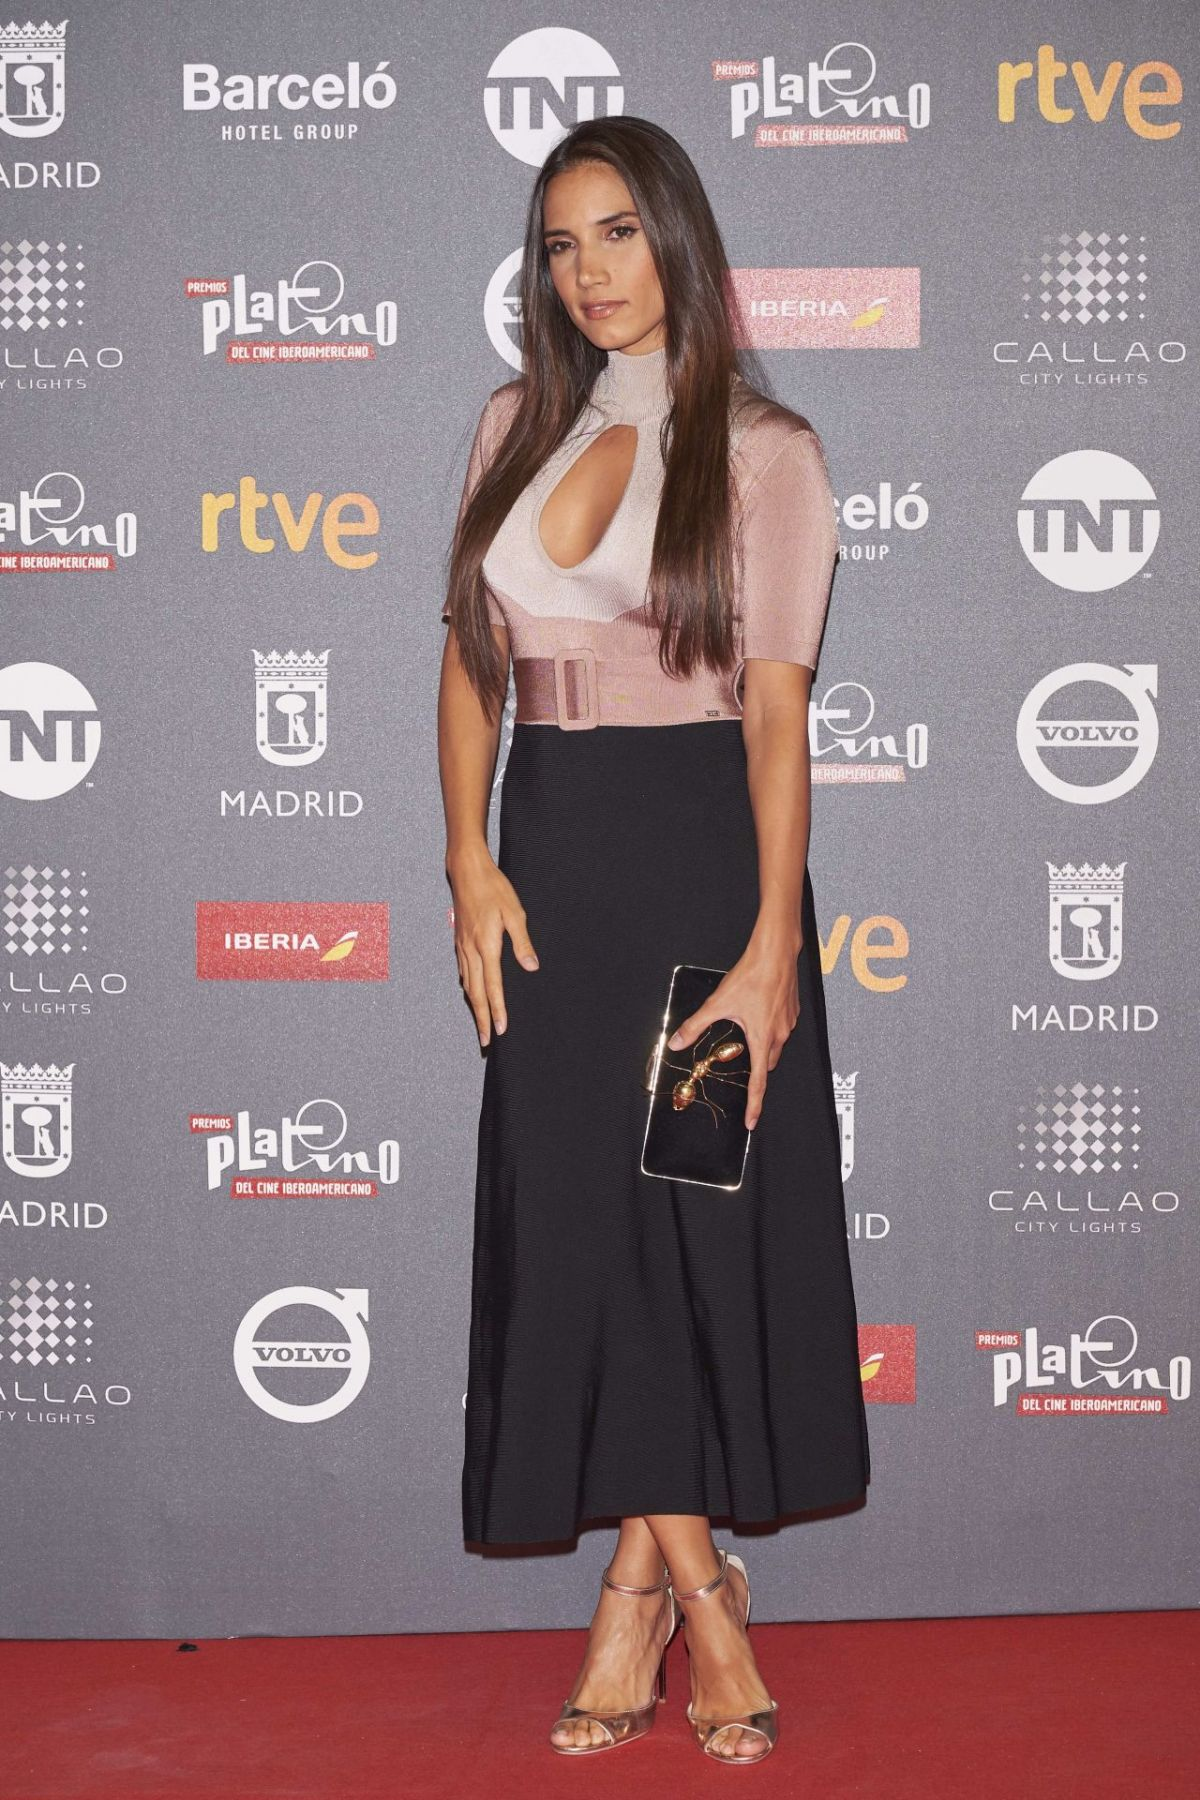 INDIA MARTINEZ at Platino Awards in Madrid 07/20/2017